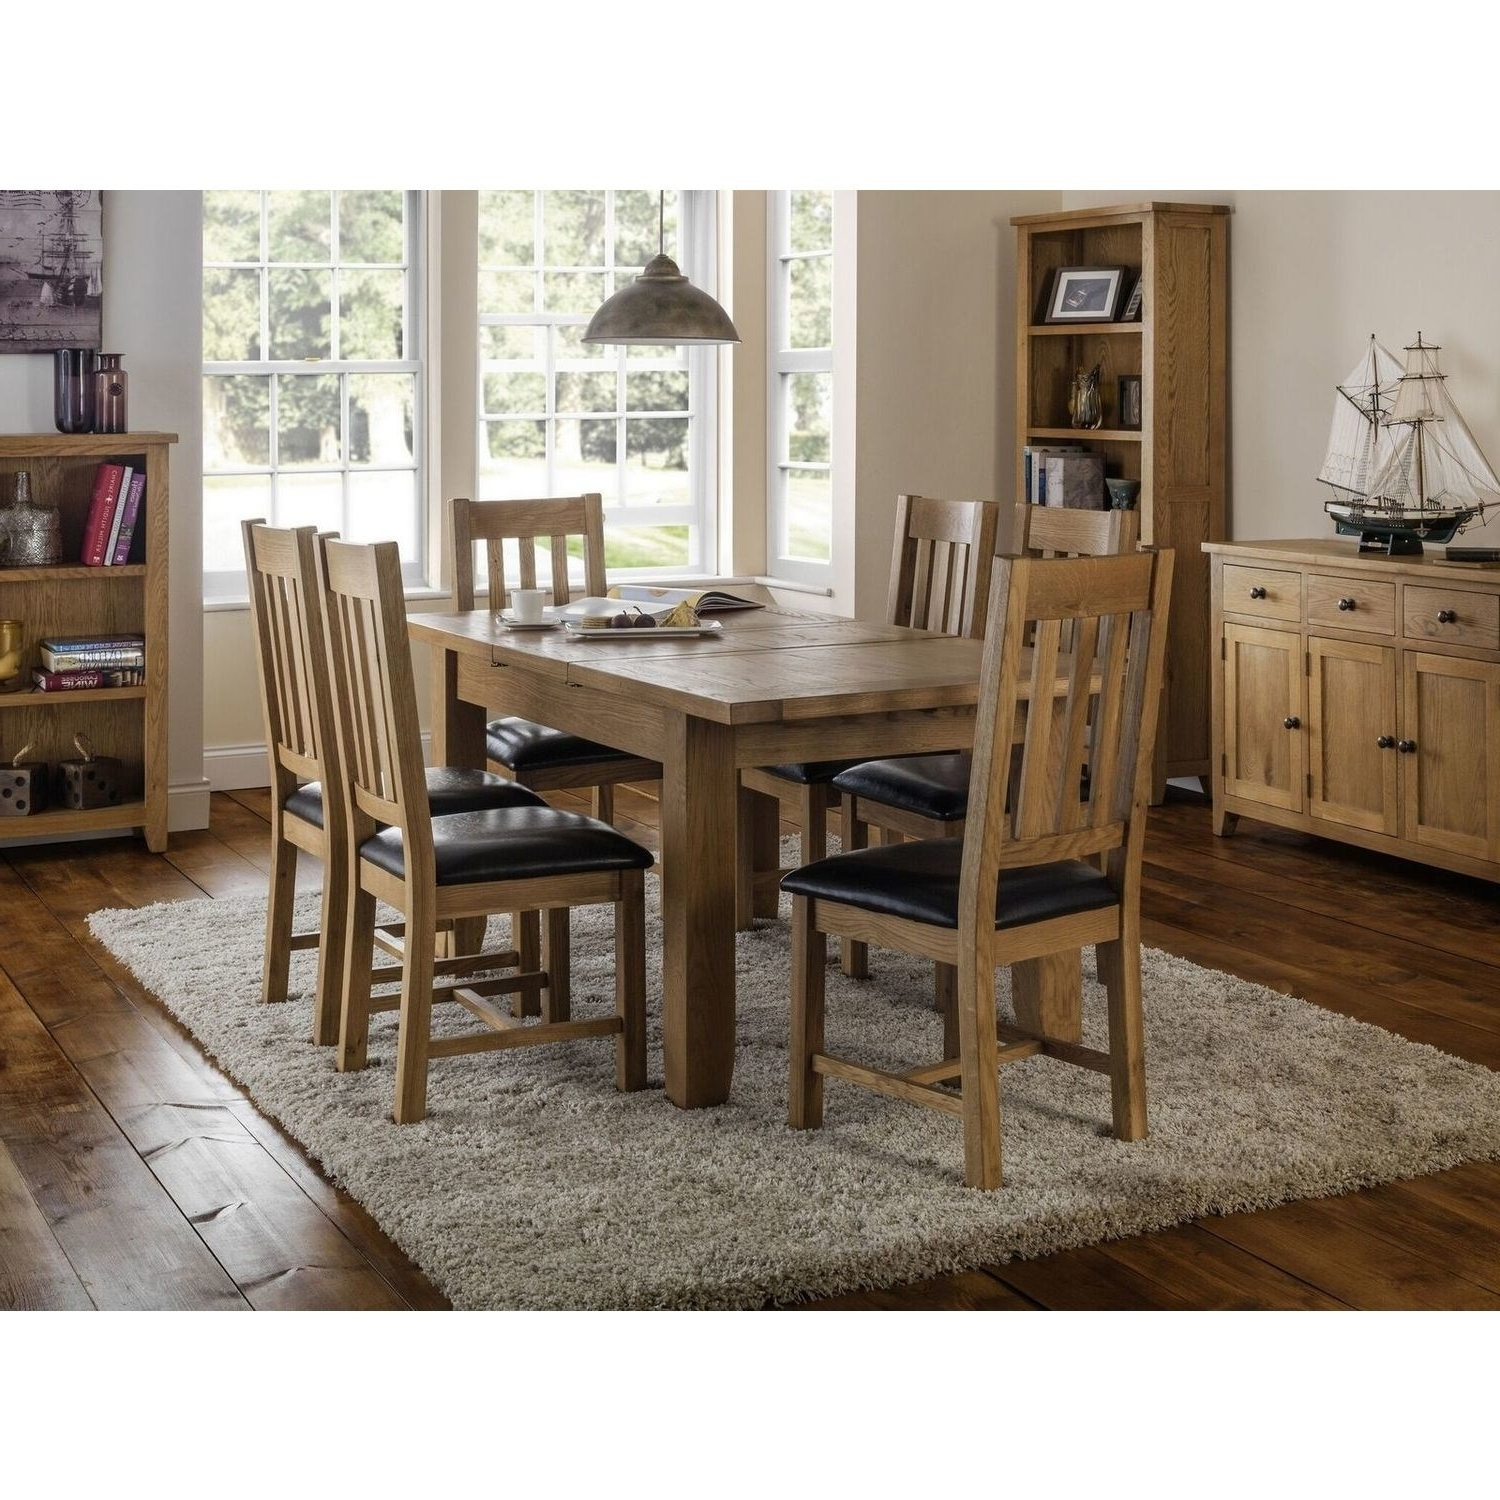 Extending Dining Tables 6 Chairs Throughout Fashionable Julian Bowen Astoria Extending Dining Table Set With 6 Astoria (View 21 of 25)